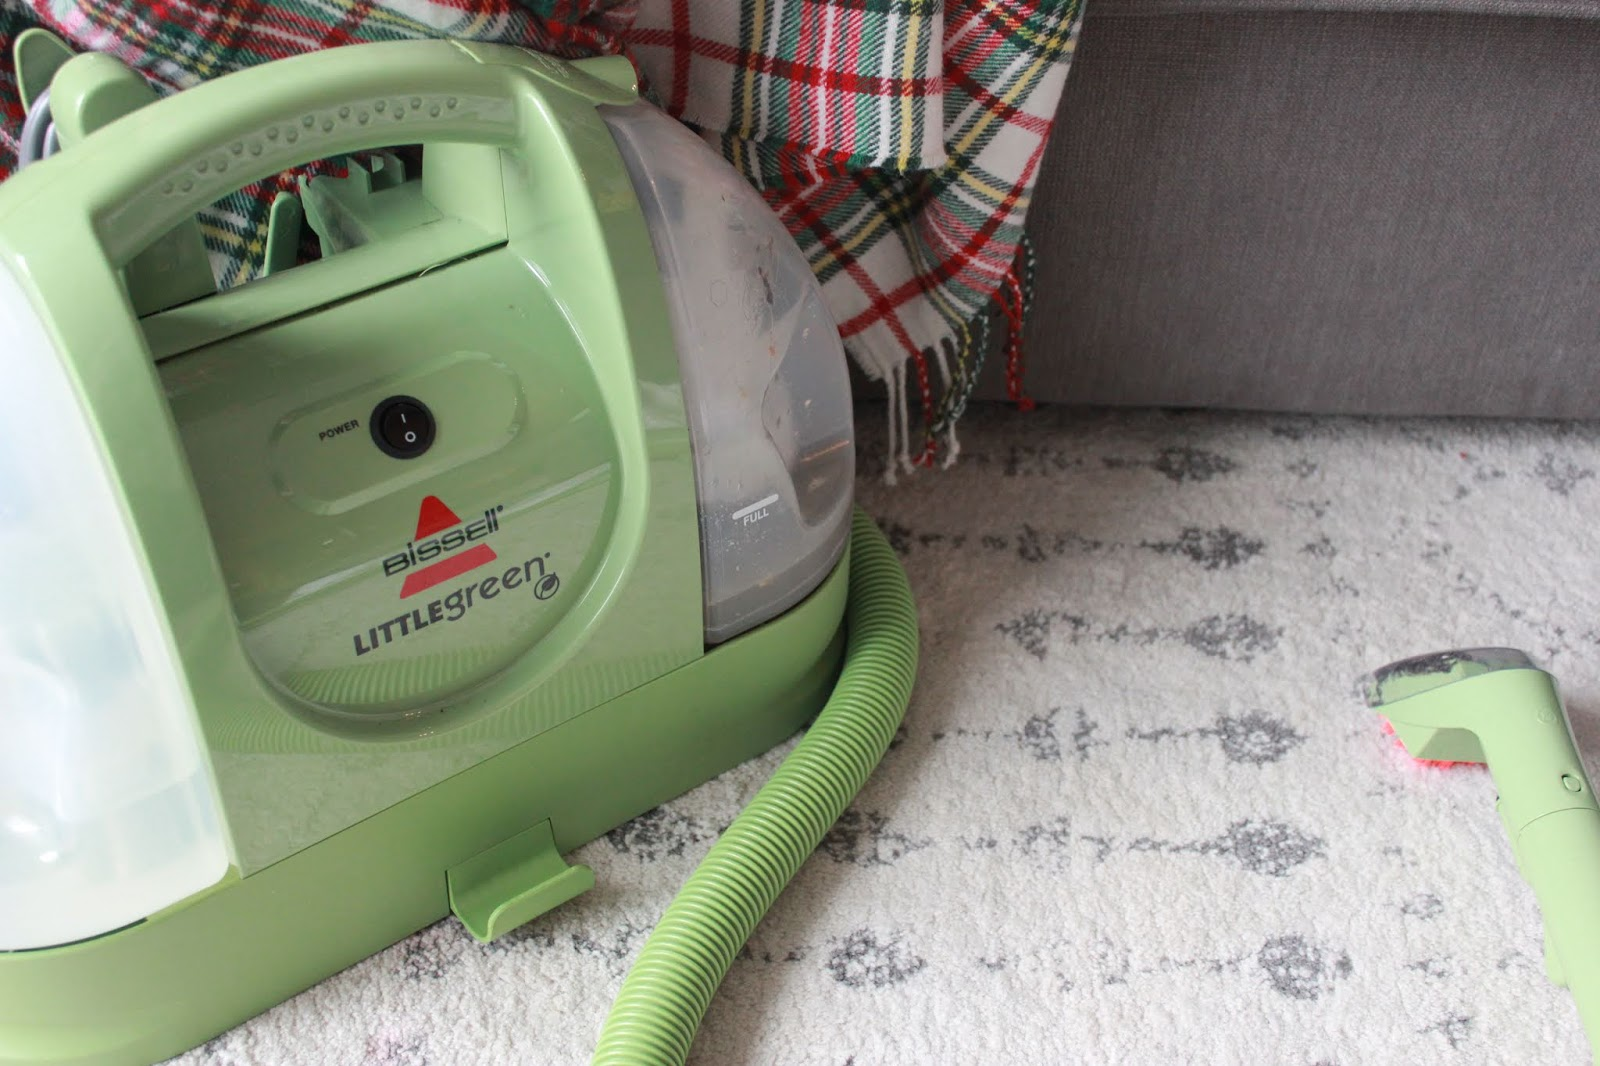 The One Tool You Need for Cleaning Up After a Toddler: Bissel Little Green